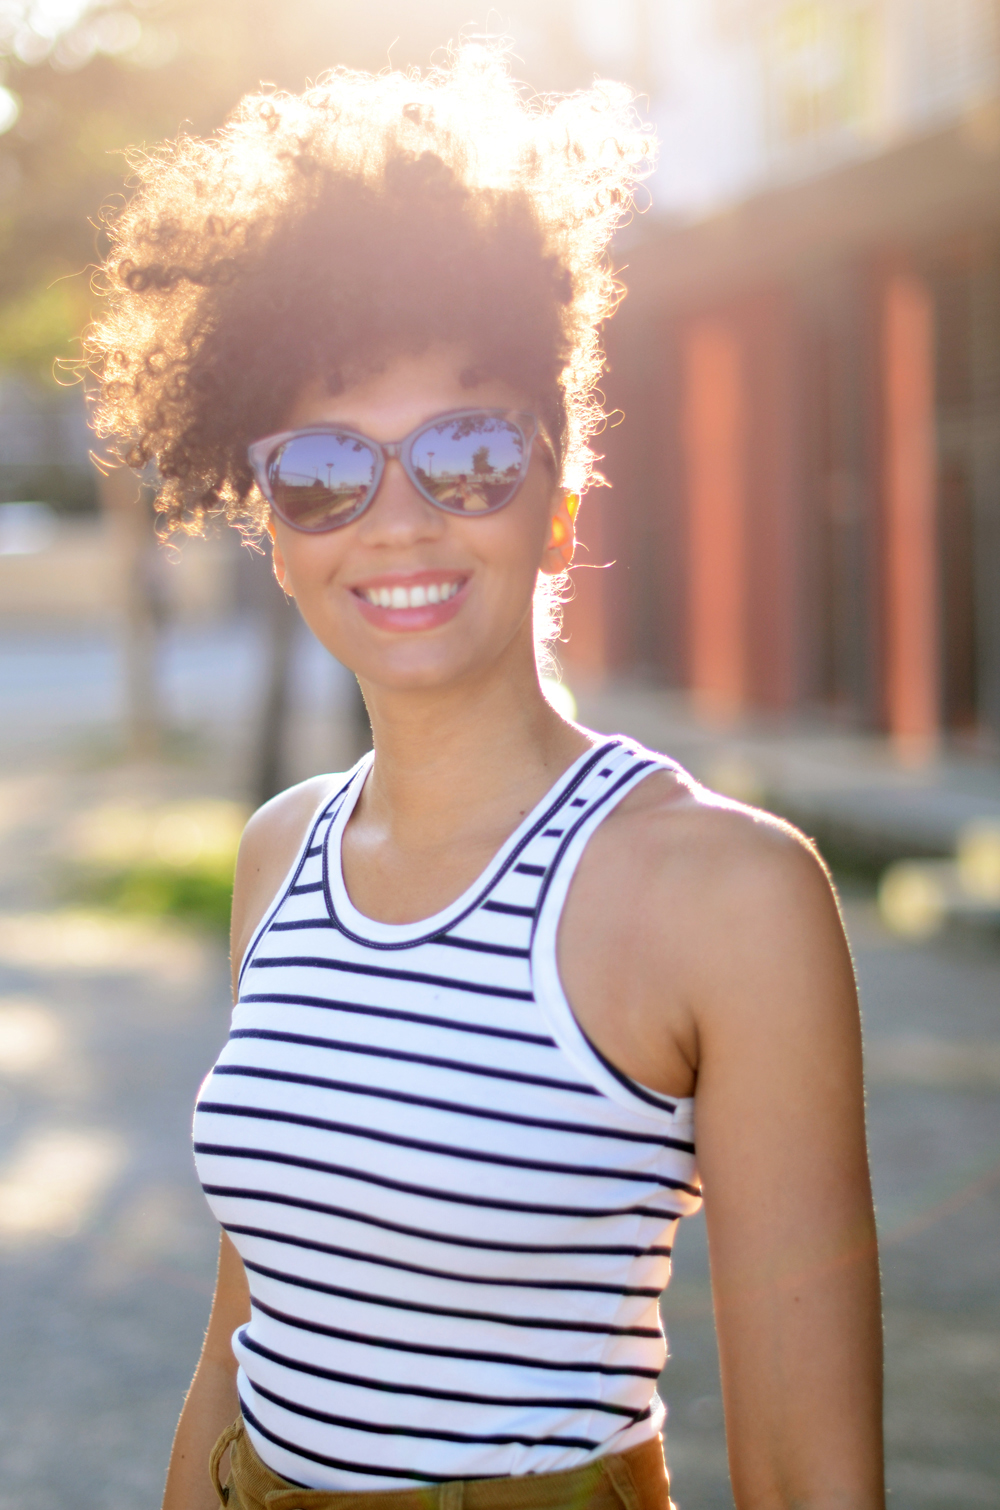 mercredie-blog-mode-geneve-suisse-blogueuse-bloggeuse-optic2000-lunettes-de-soleil-MAUI-JIM-SUNSHINE-725-64-natural-hair-frohawk2